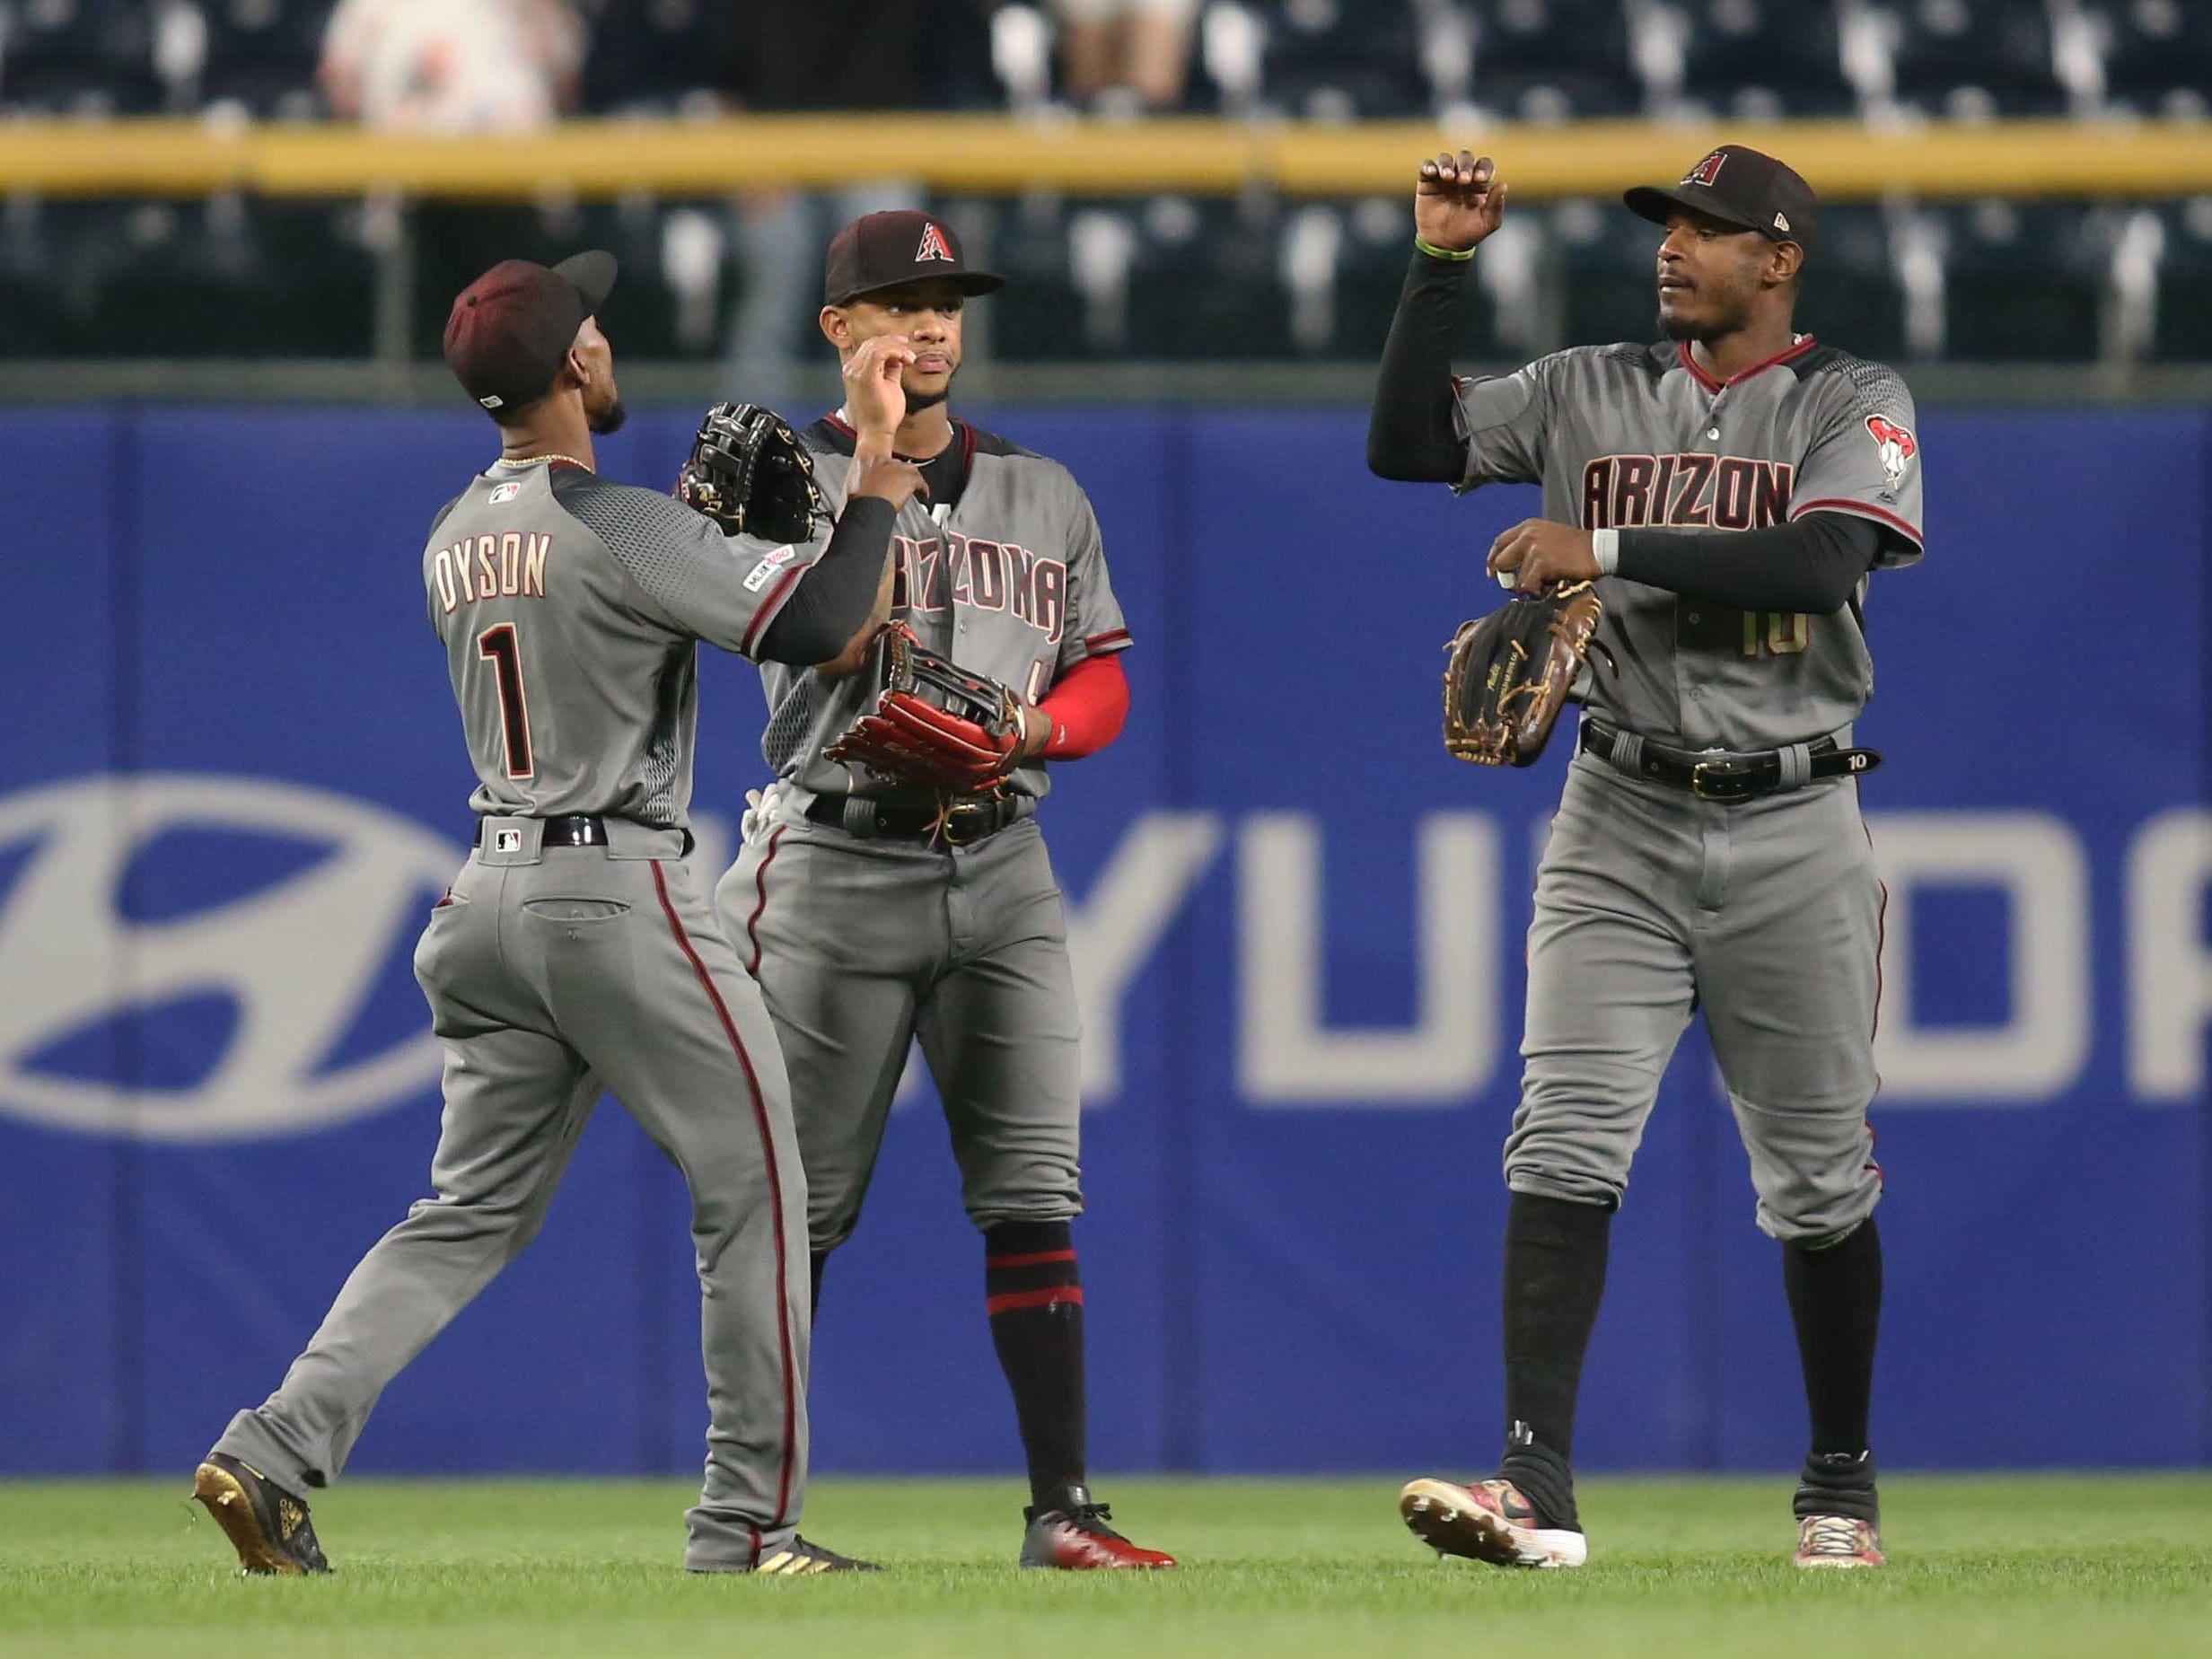 Apr 22, 2019; Pittsburgh, PA, USA;  Arizona Diamondbacks left fielder Jarrod Dyson (1) and center fielder Ketel Marte (4) and right fielder Adam Jones (10) celebrate after defeating the Pittsburgh Pirates at PNC Park. Arizona won 12-4.